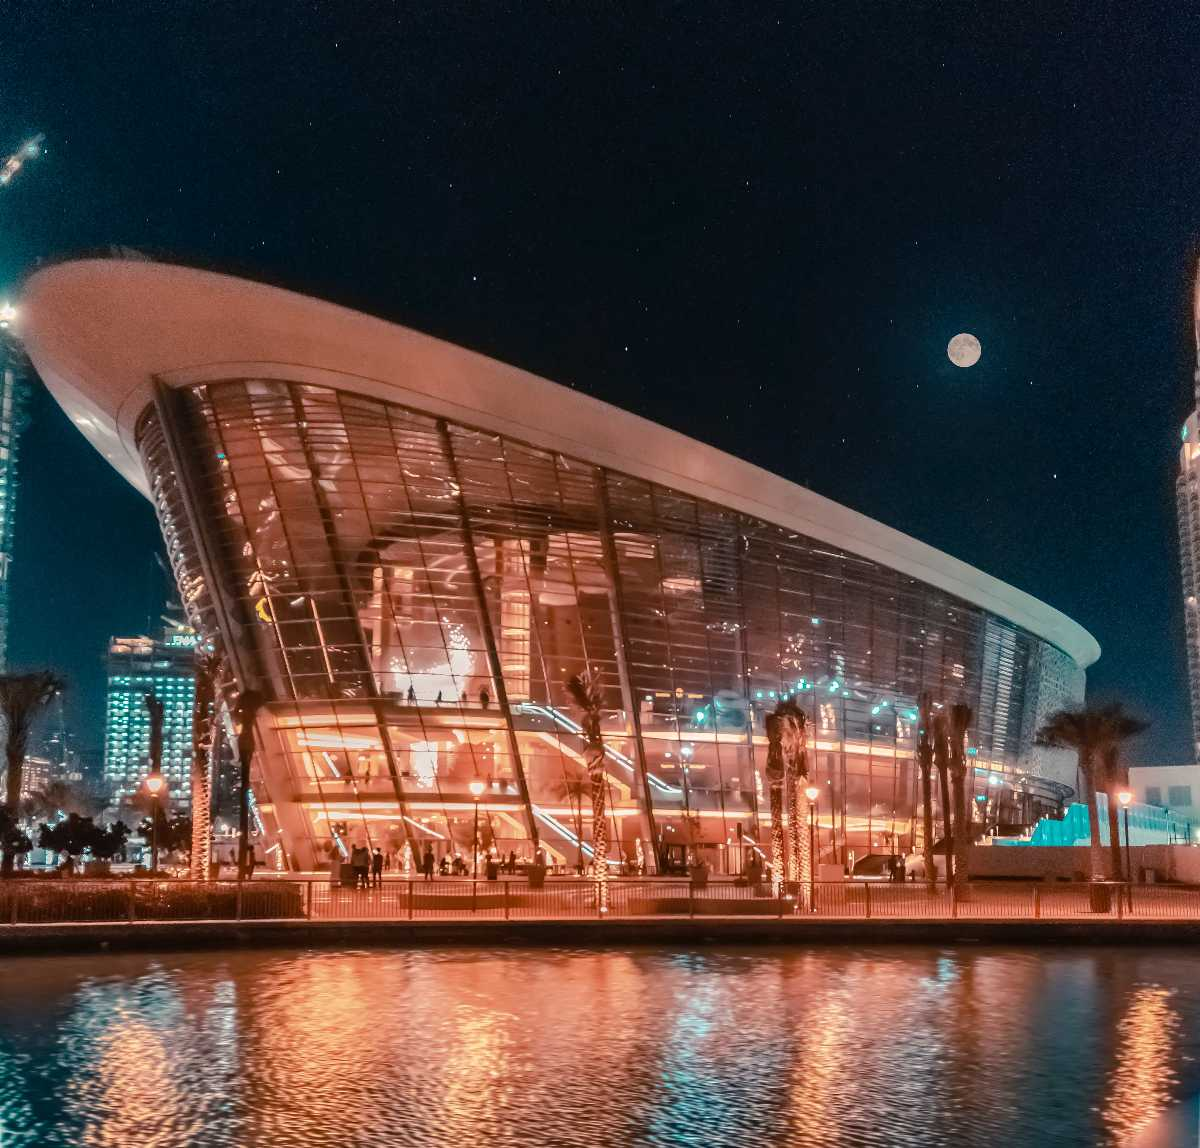 New Years Eve Dubai 2021 - Parties, Events, Fireworks, Where to Stay